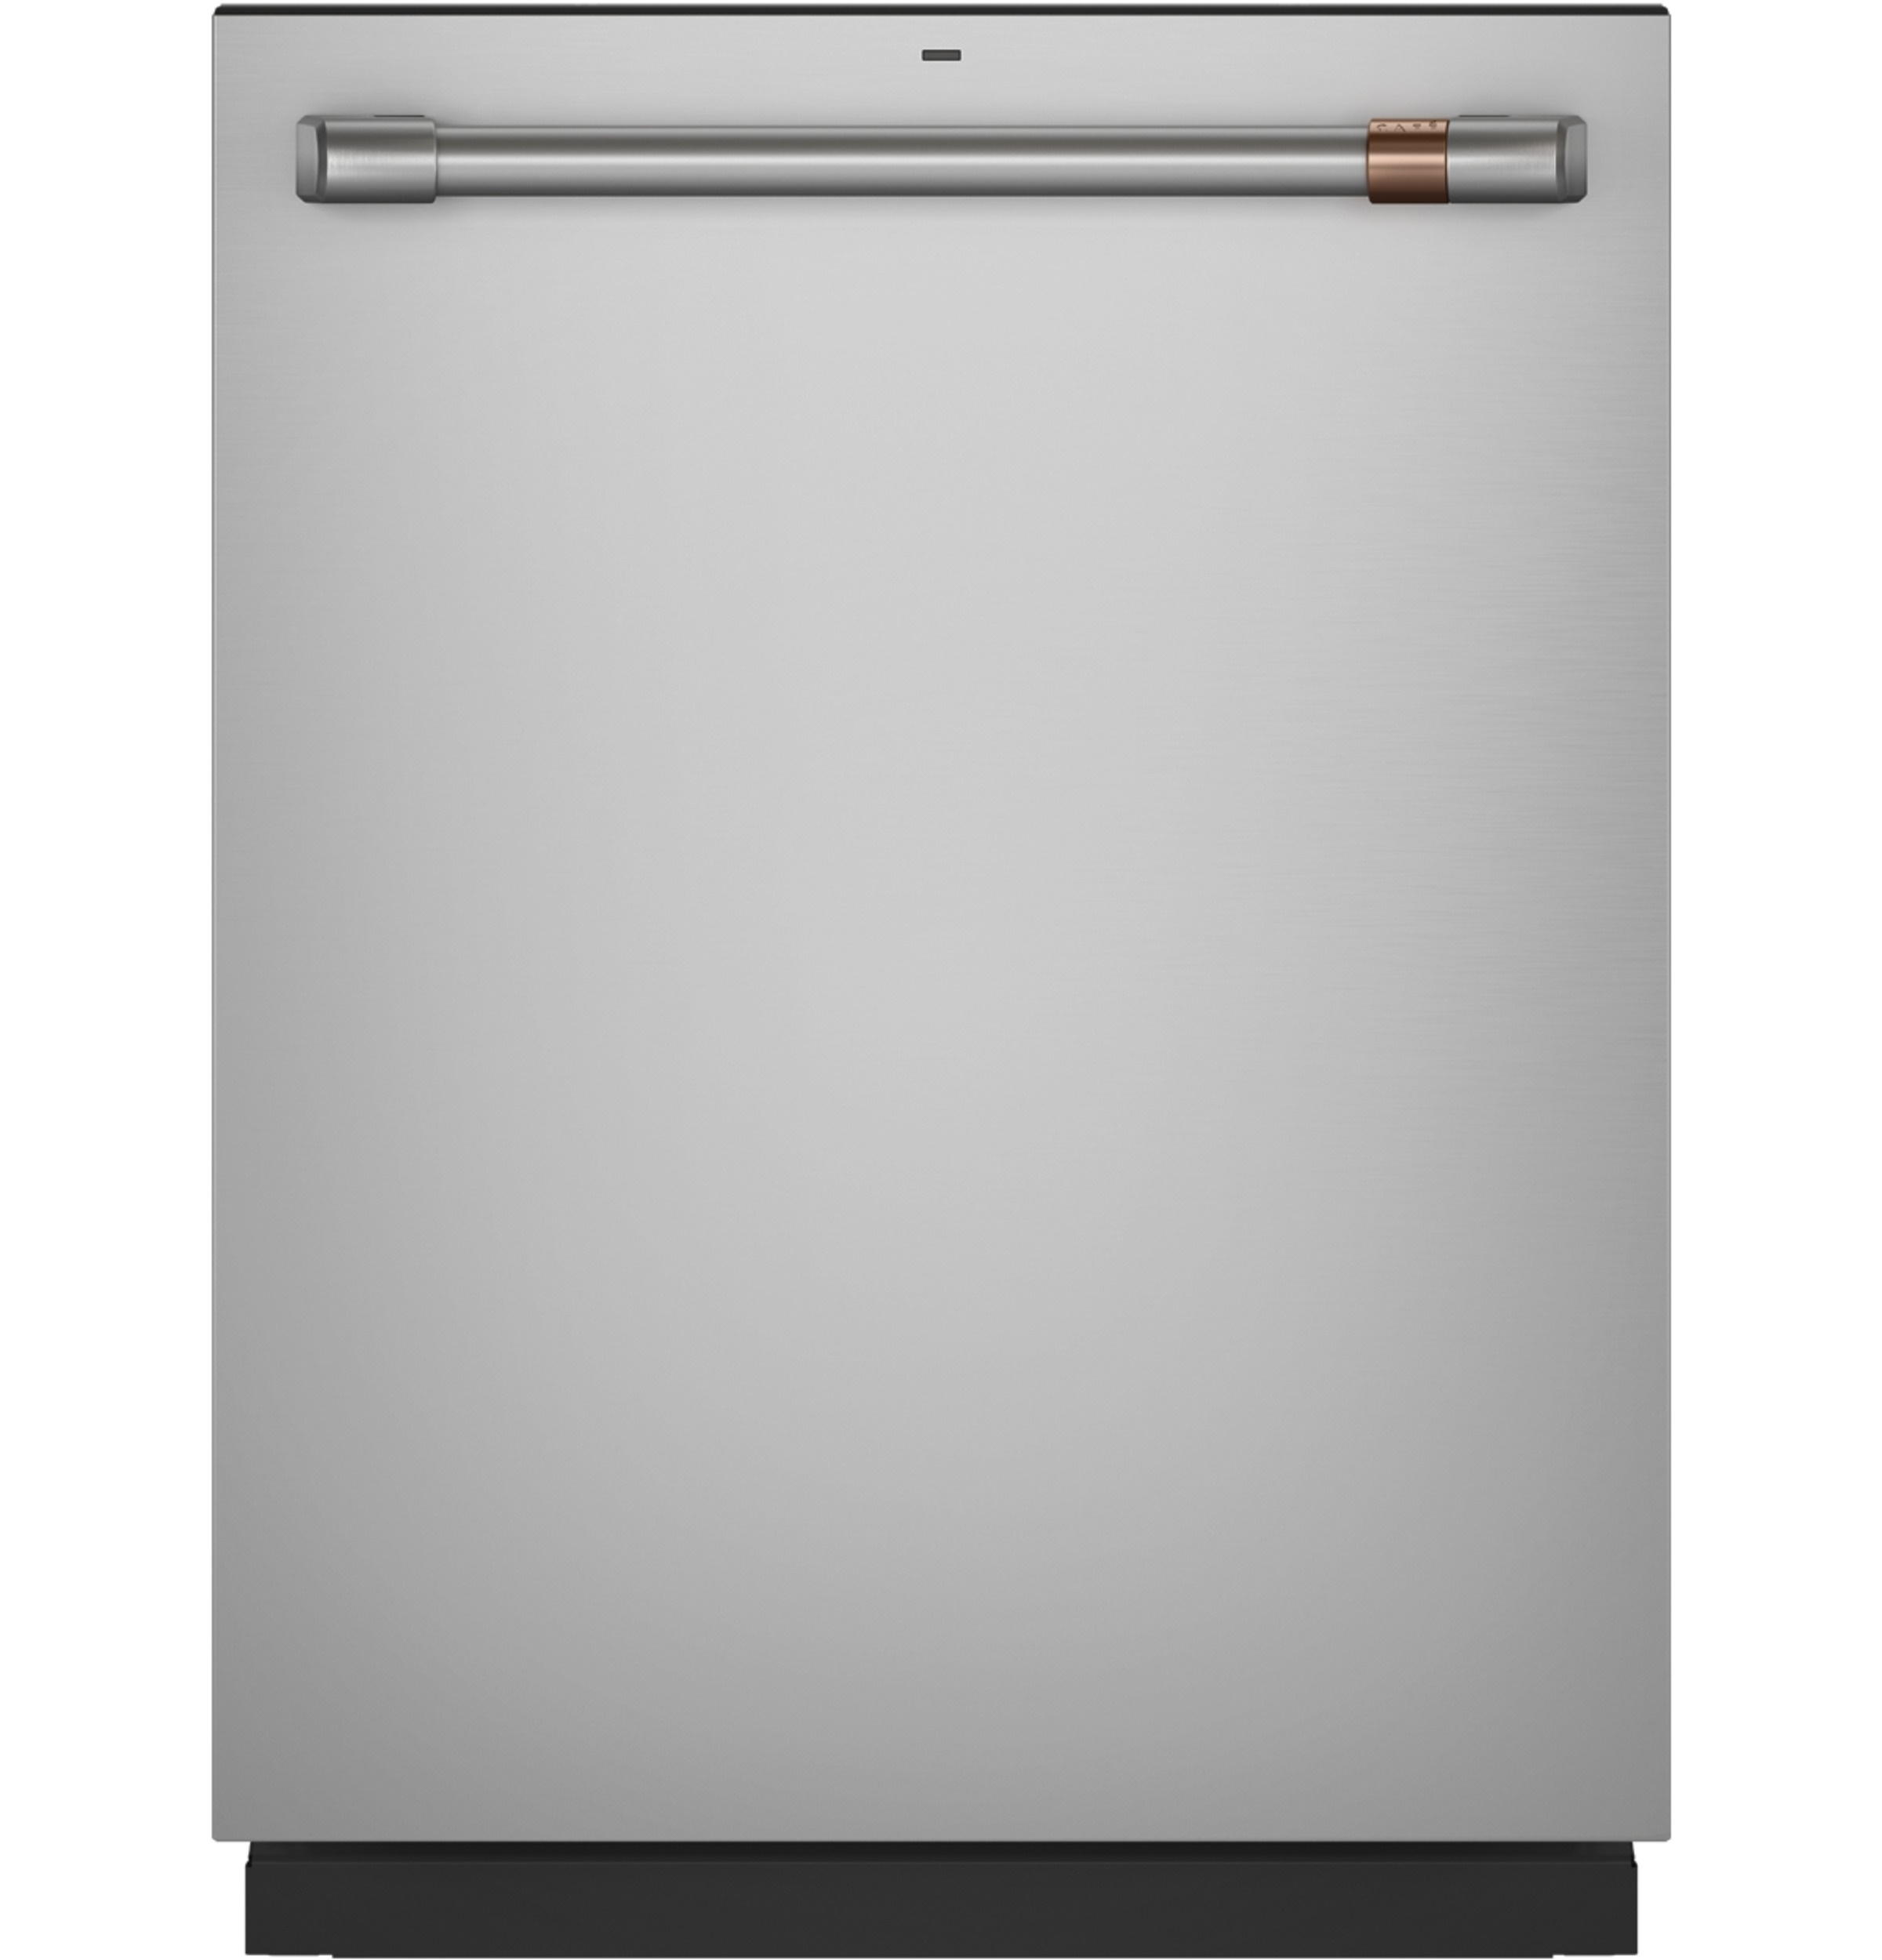 Model: CDT845P2NS1 | Cafe Café™ Stainless Steel Interior Dishwasher with Sanitize and Ultra Wash & Dry